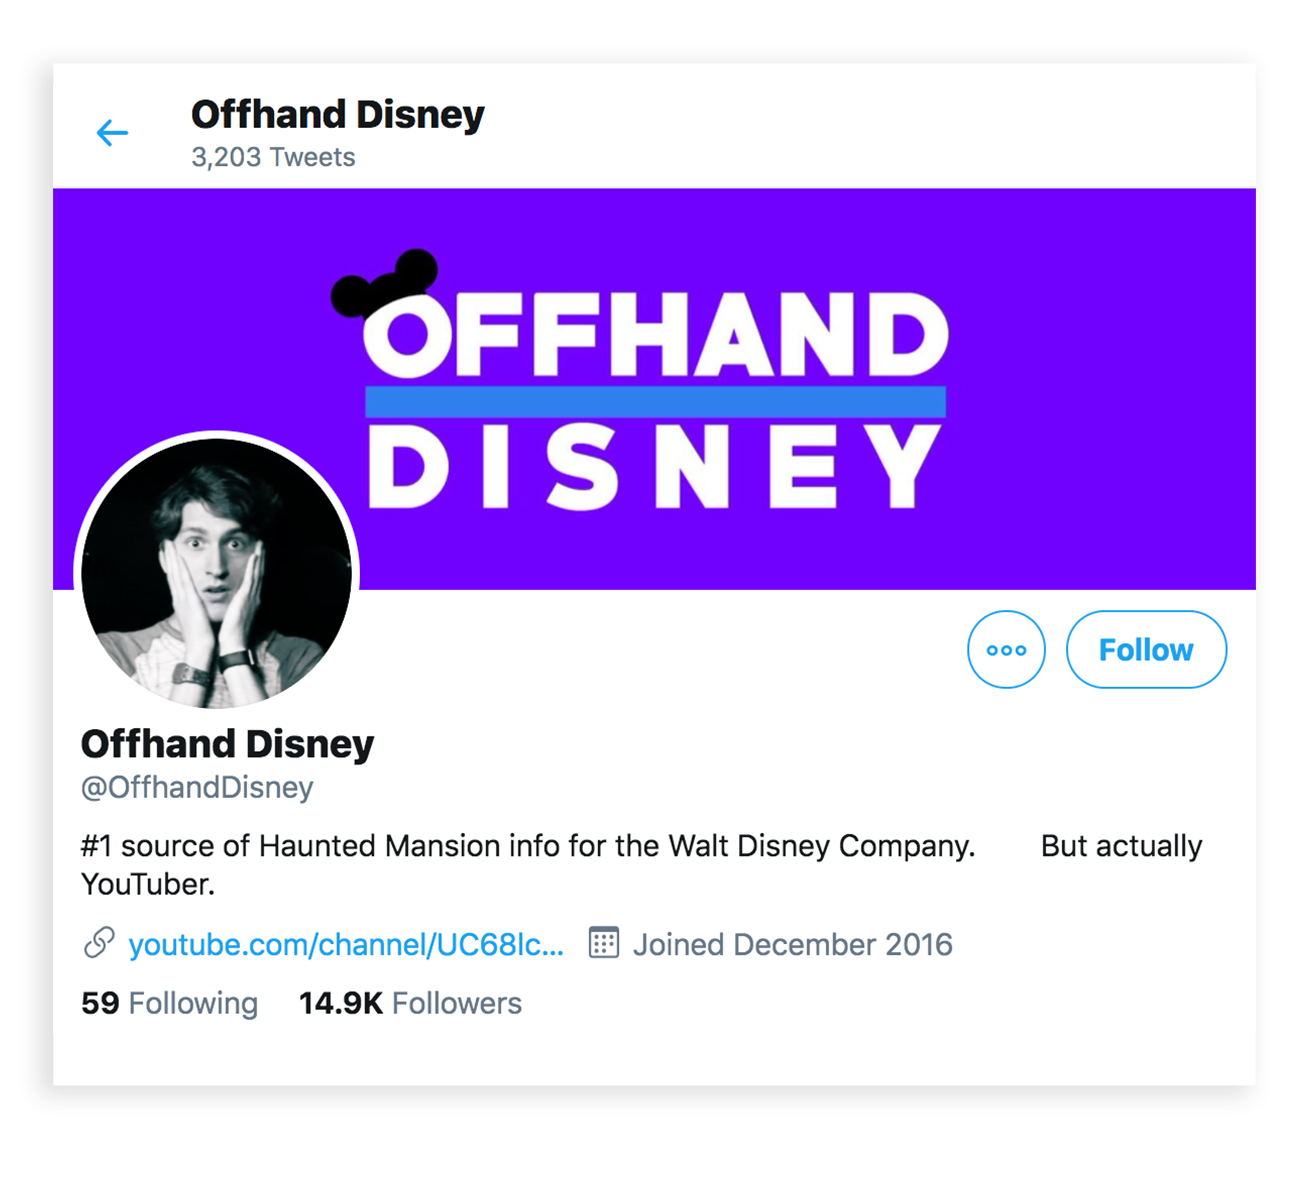 Offhand Disney's Twitter profile page has 3,203 tweets. Their cover images is a bright bluish purple. Offhand and Disney are written in all caps and the first word is on top of the other with a thick blue line separating them. On the O of Offhand is a Mickey Mouse Disney hat. The profile image is of a young man in his early 20's holding his hand against his cheeks and he looks surprised. The bio reads: #1 source of Haunted Mansion info for the Walt Disney Company. But actually youtuber